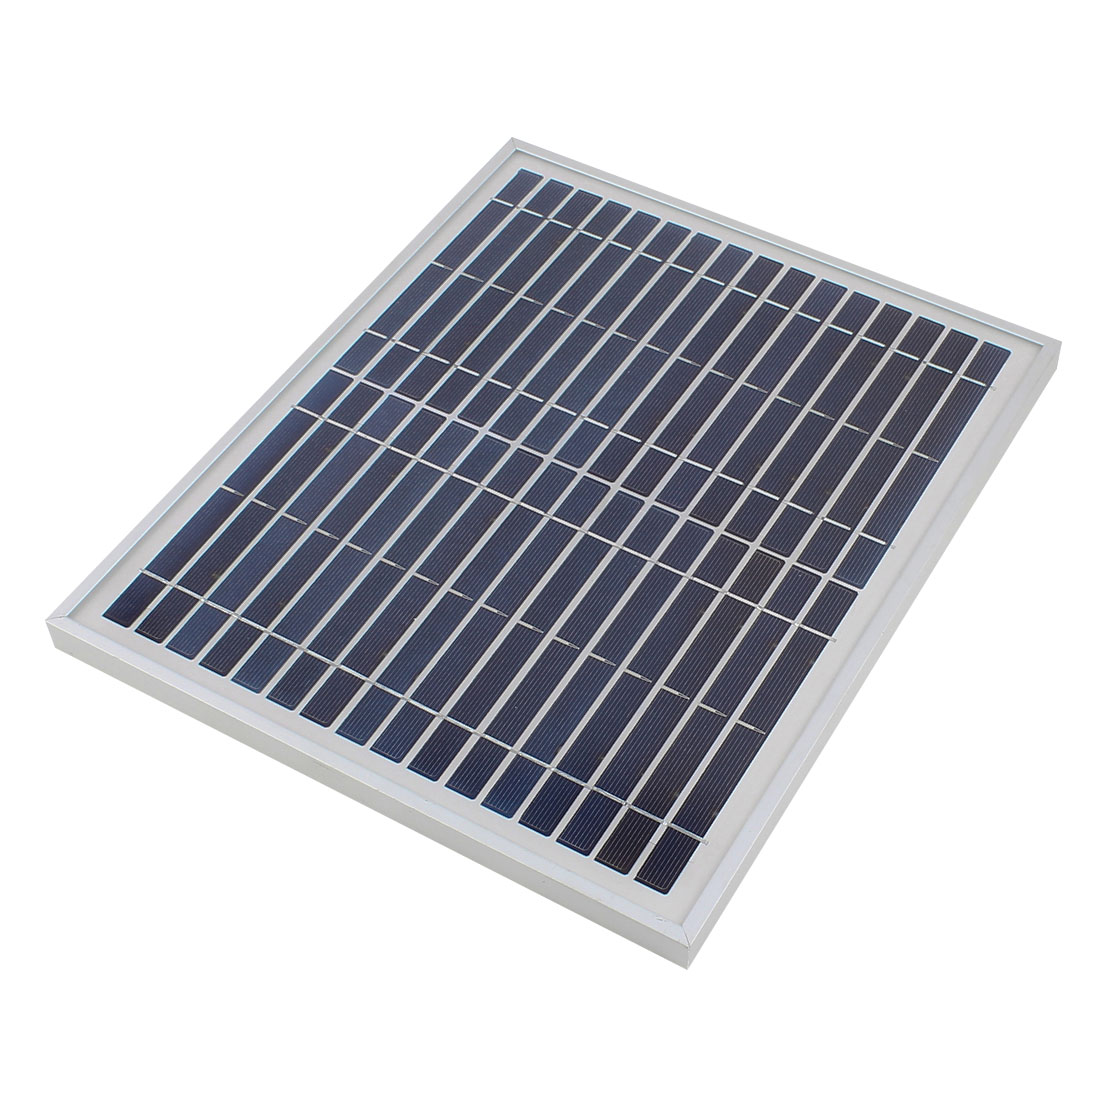 16V 10W DIY Polycrystallinesilicon Solar Panel Power Cell Battery Charger 345mm x 285mm x 18mm